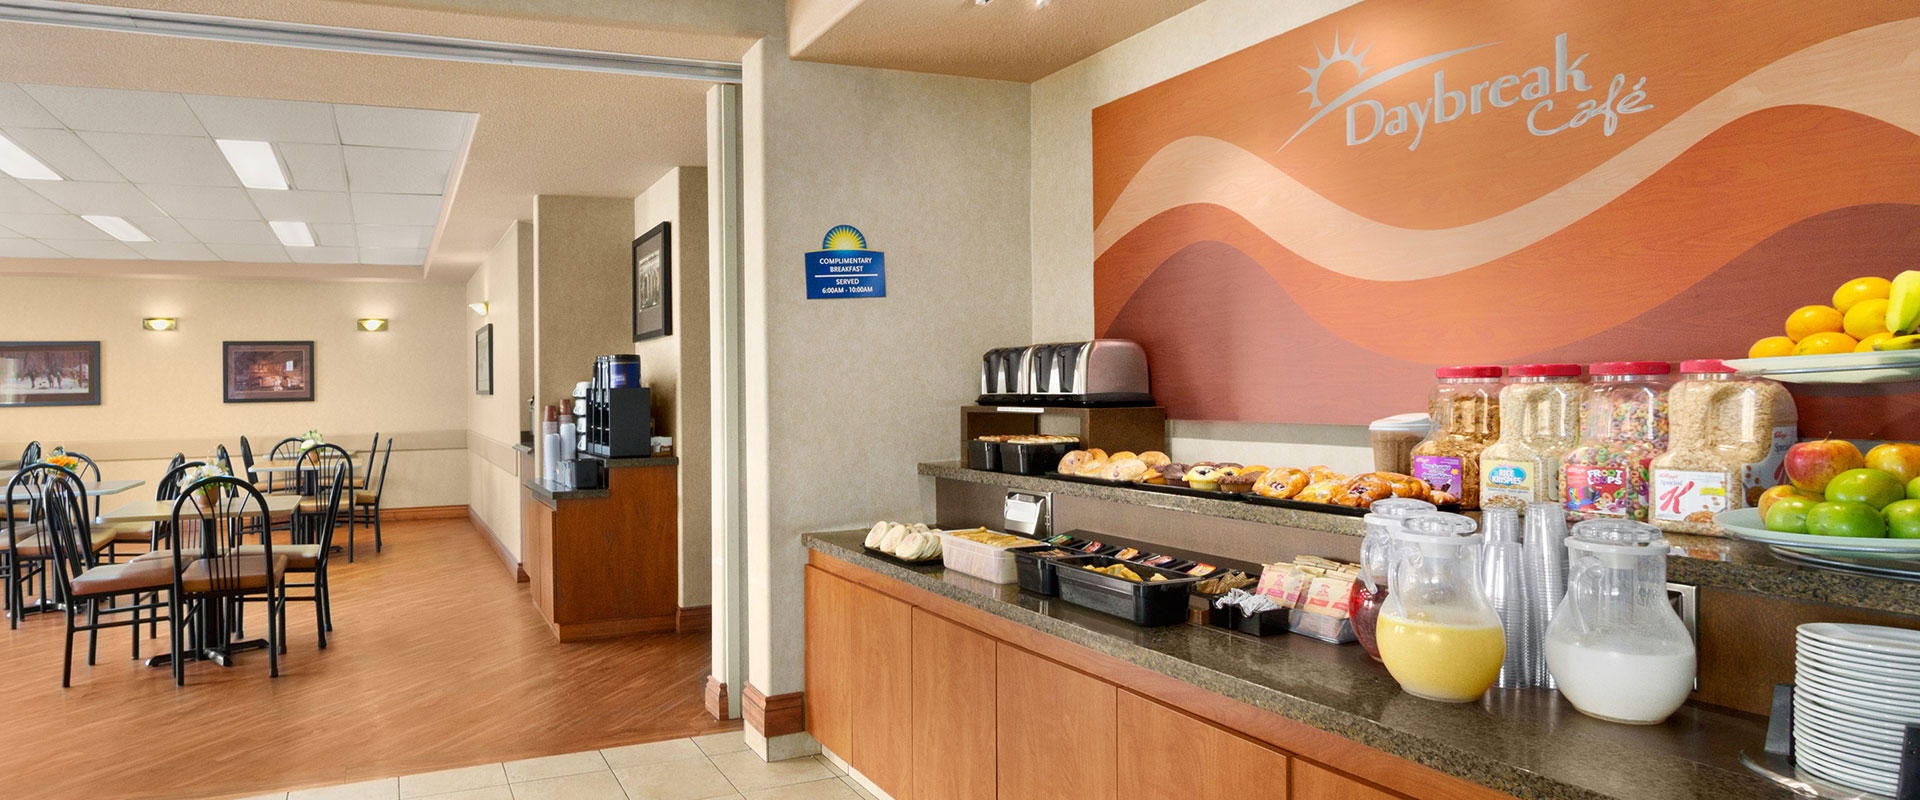 Large view of the breakfast bar at Days Inn Red Deer, Alberta stocked with muffins, danishes, cereals and beverages for guests.